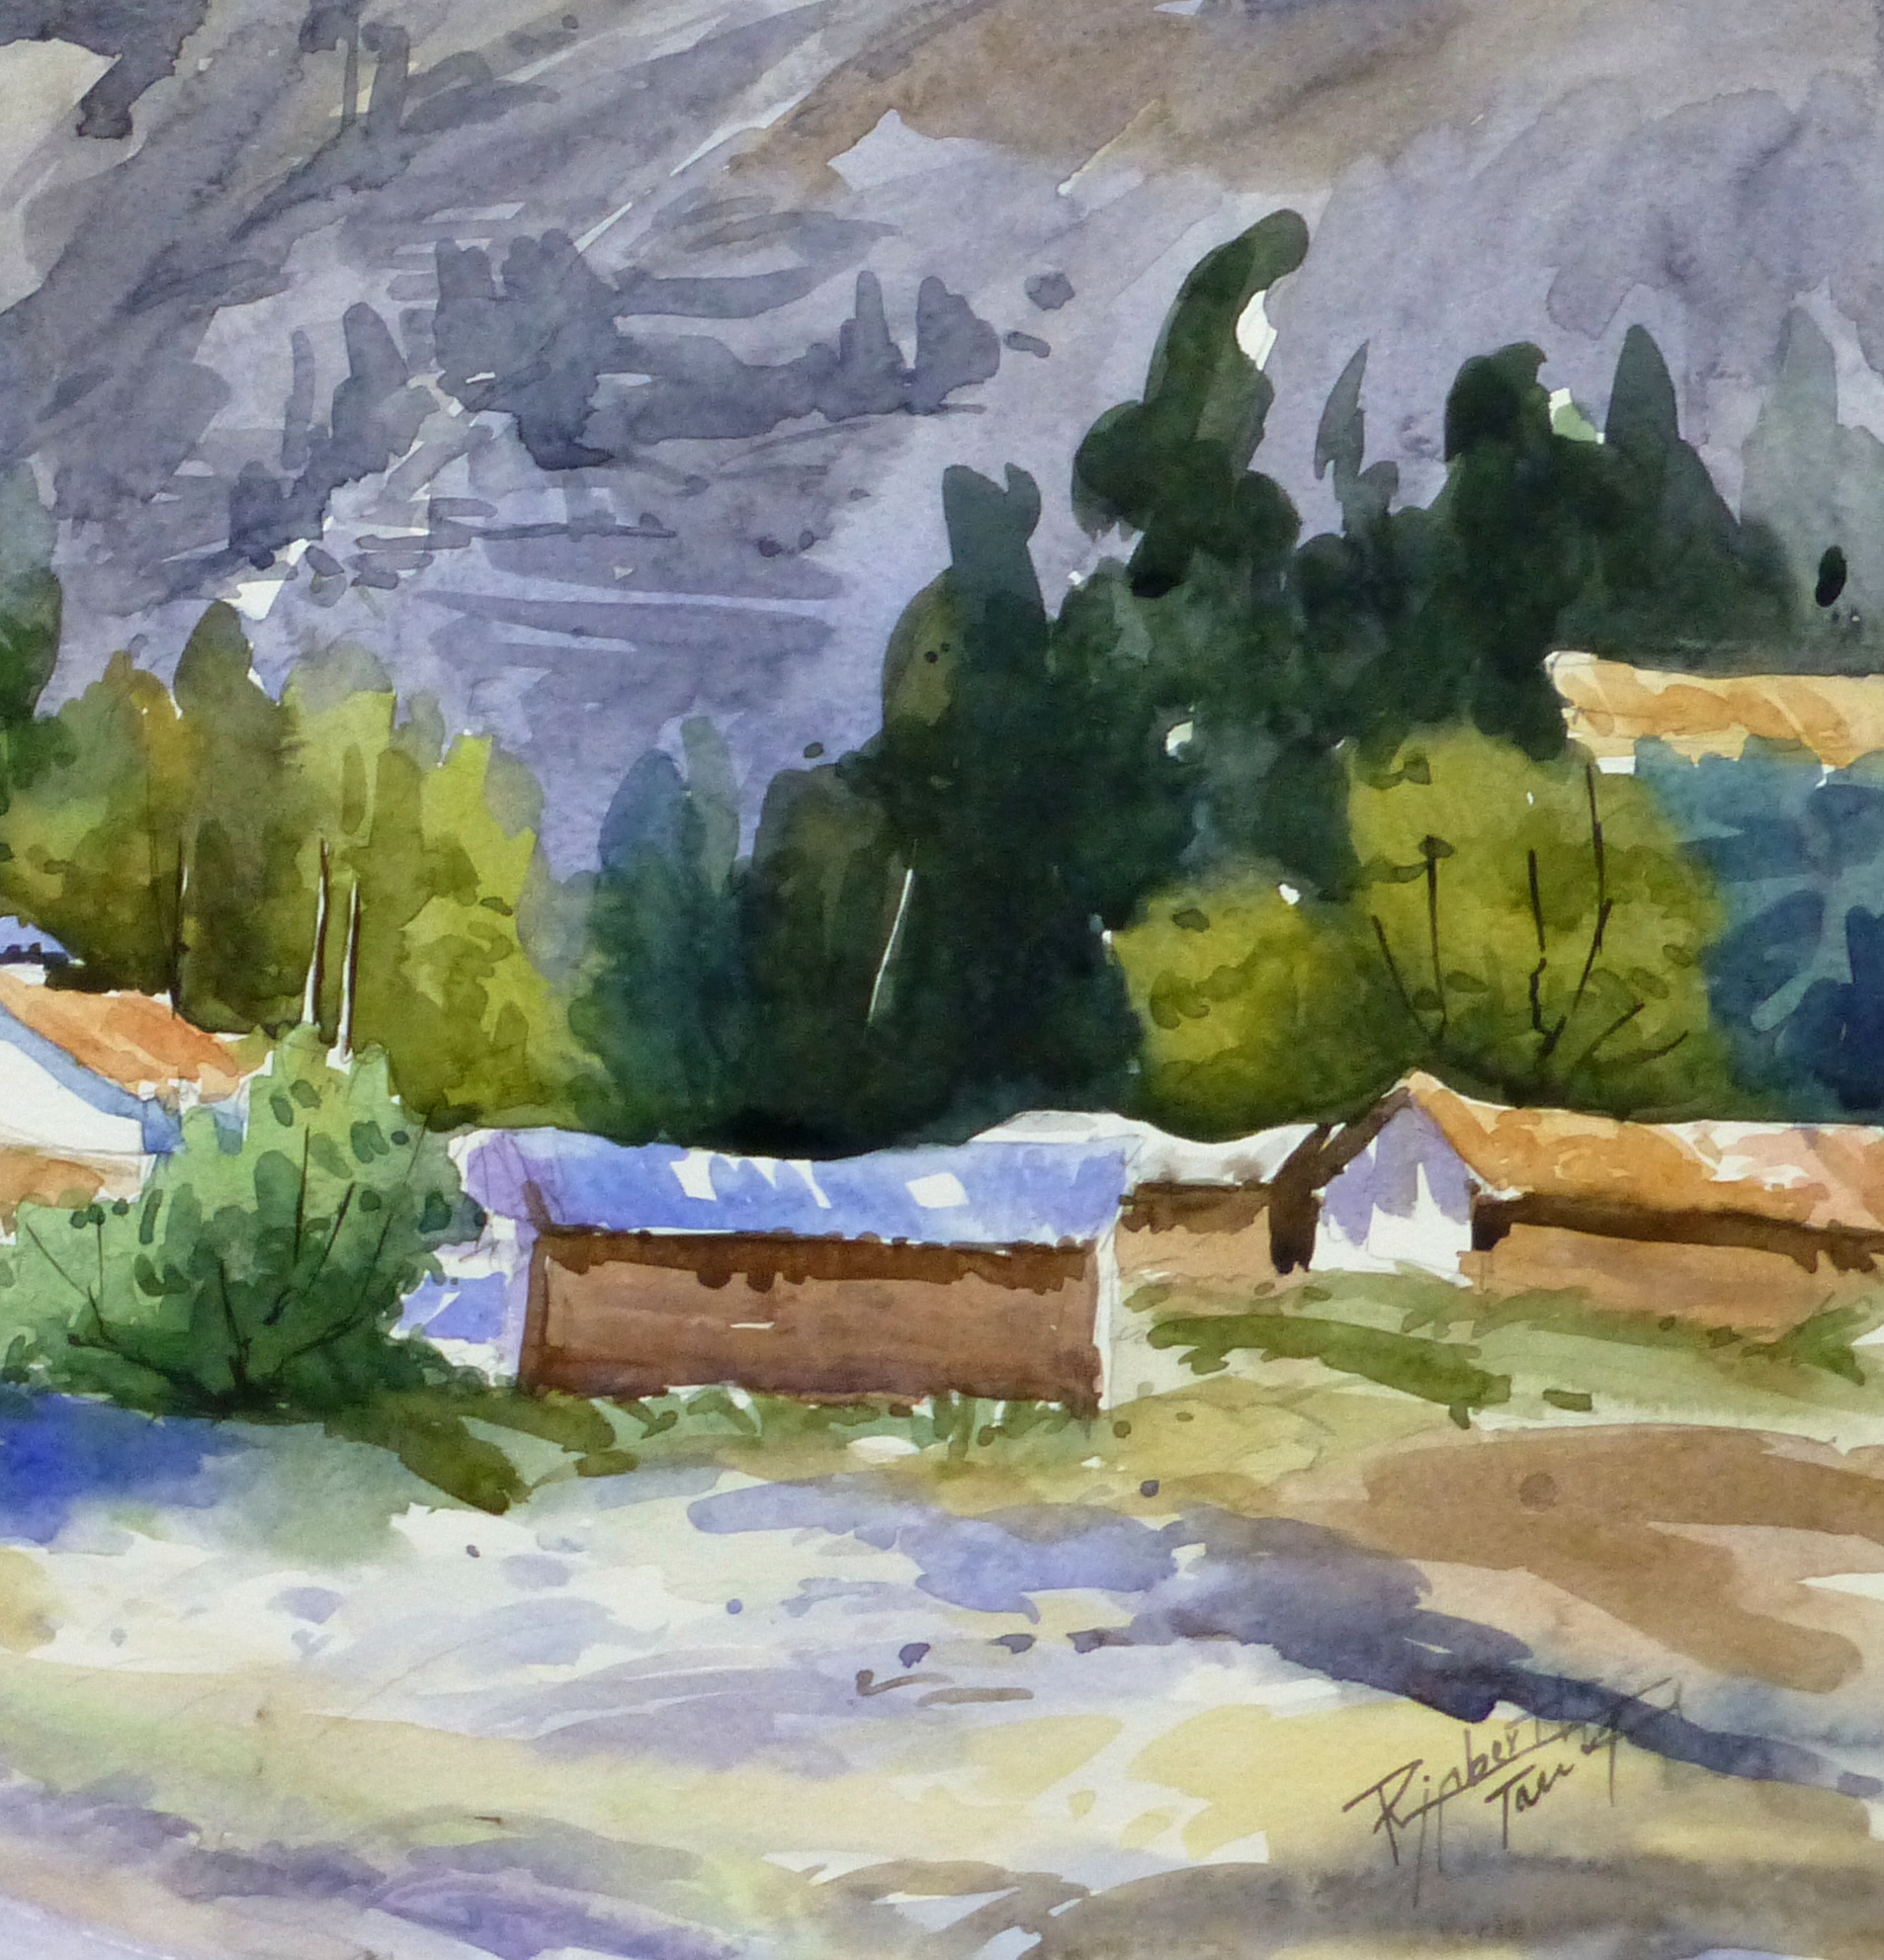 Watercolor Landscape - Mountain Town, 2011-detail-10537M